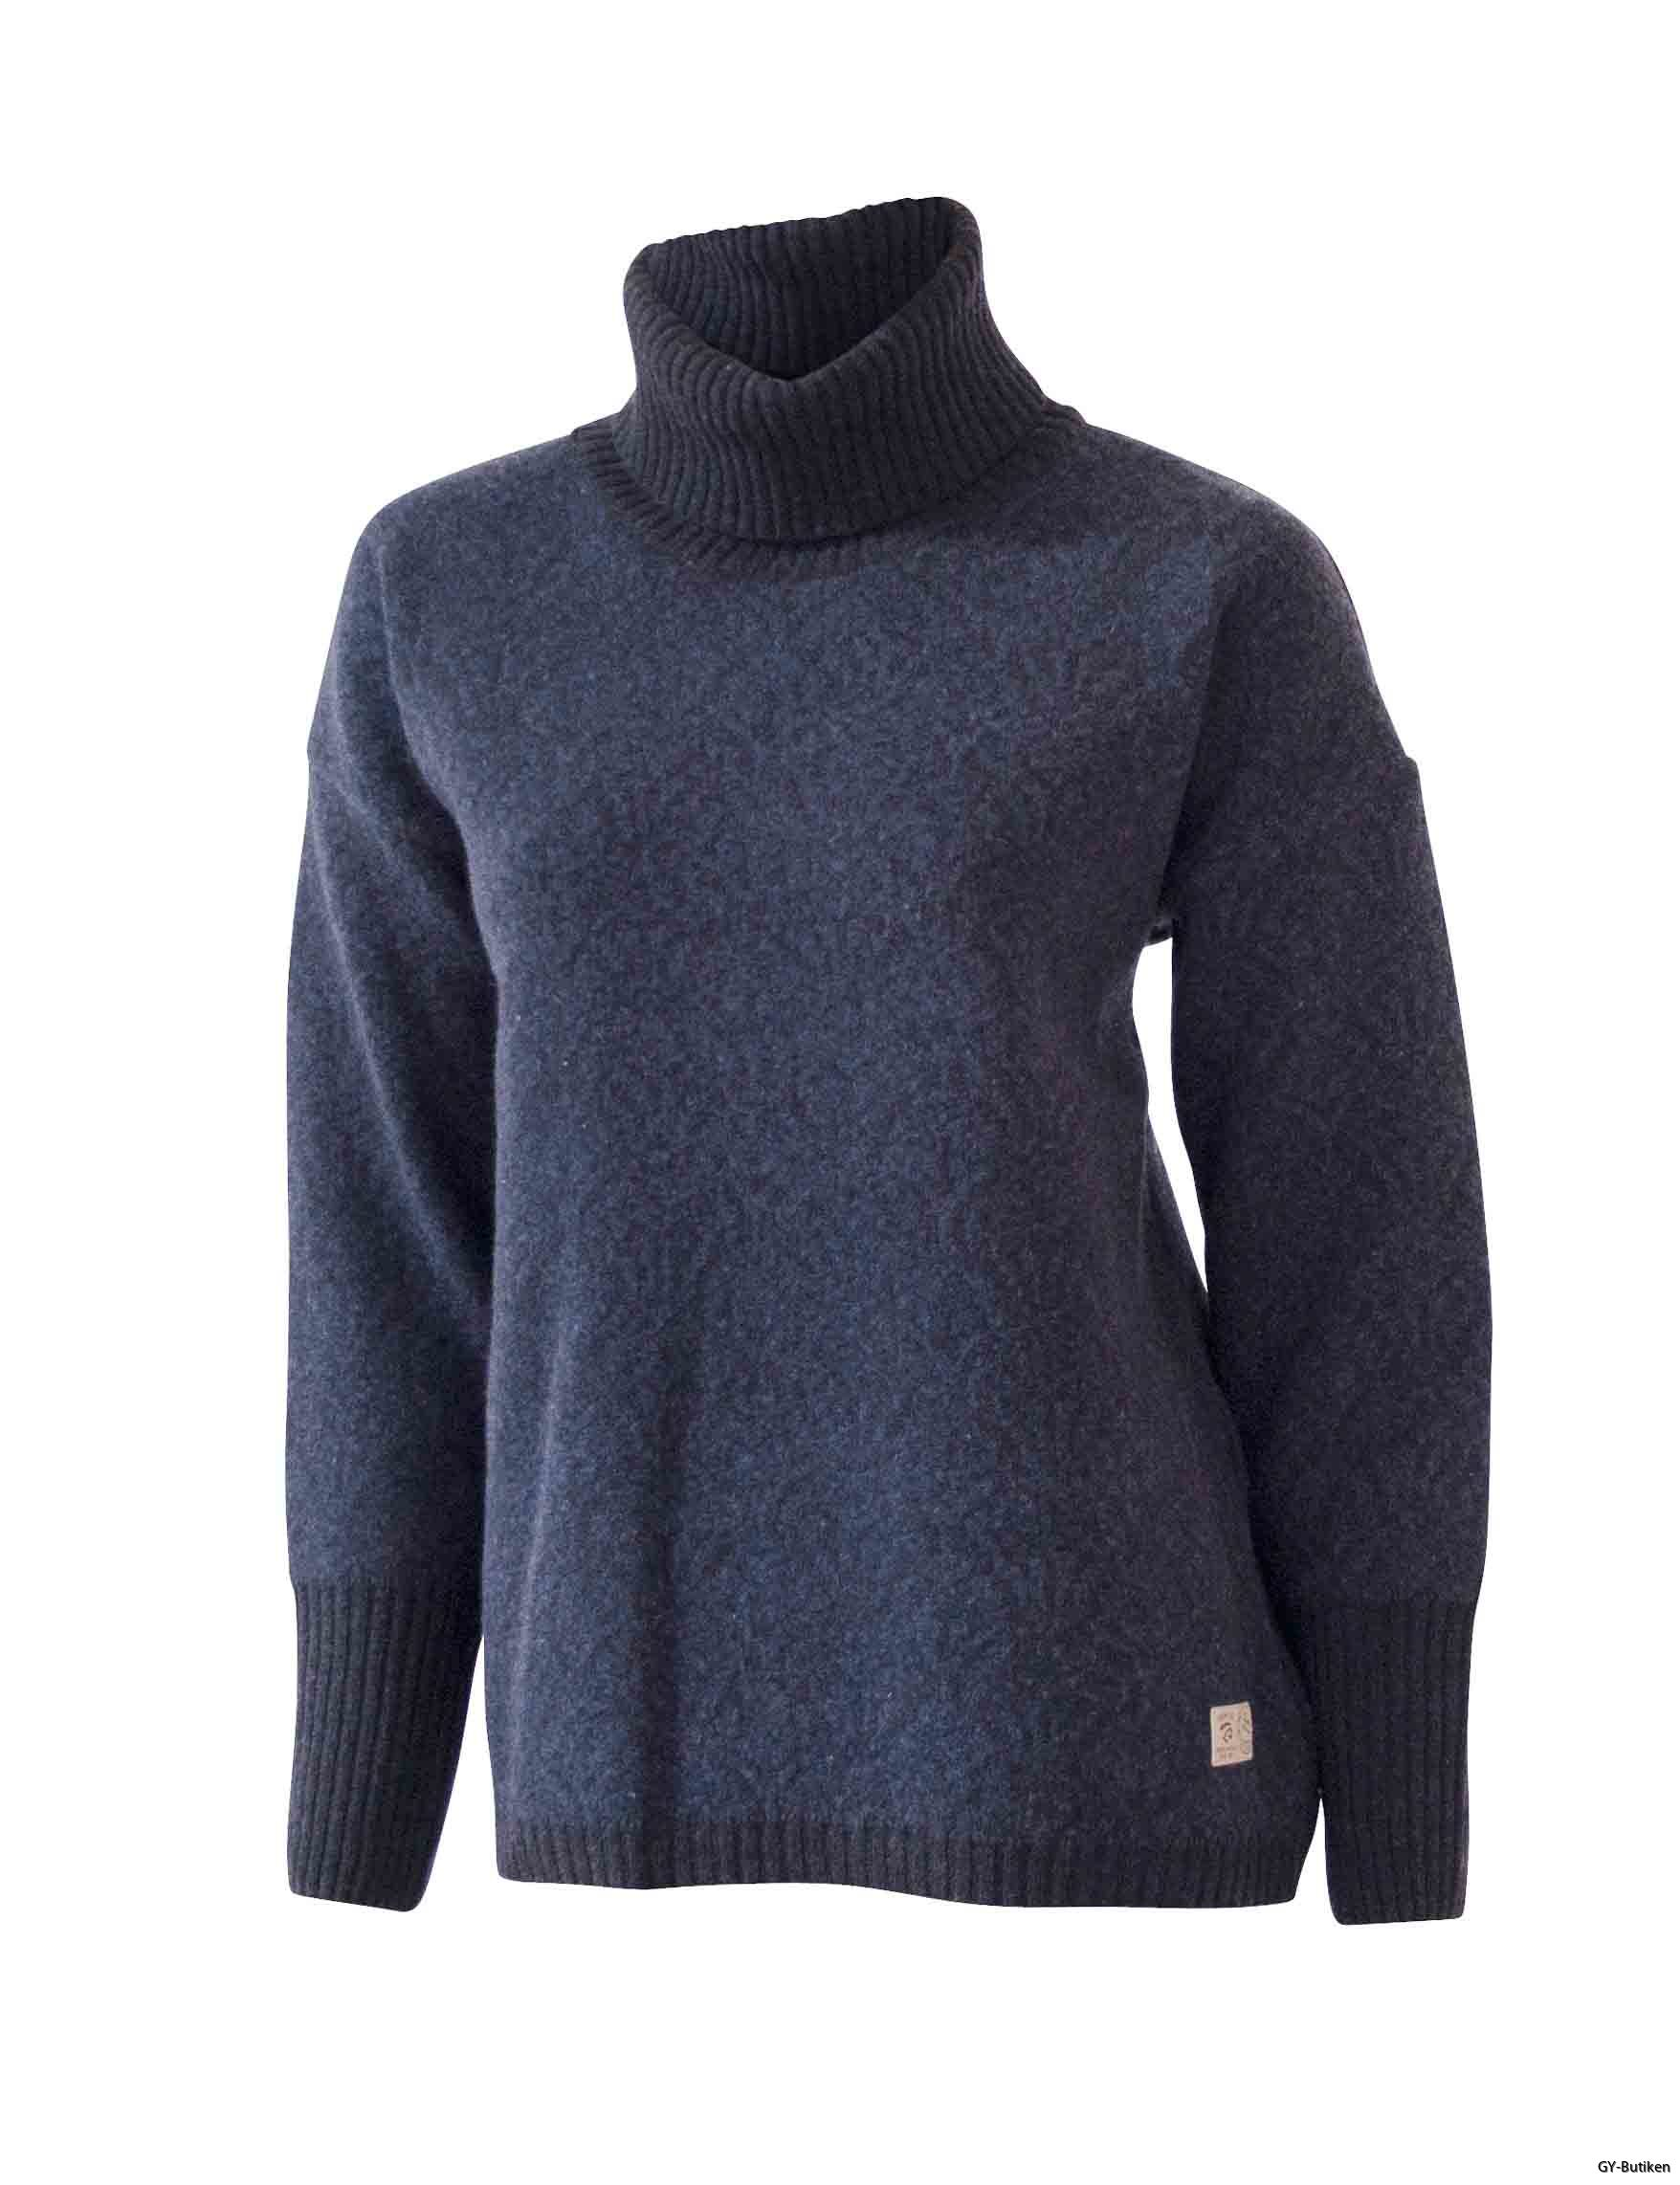 GY_Korrebo_Sweater_022